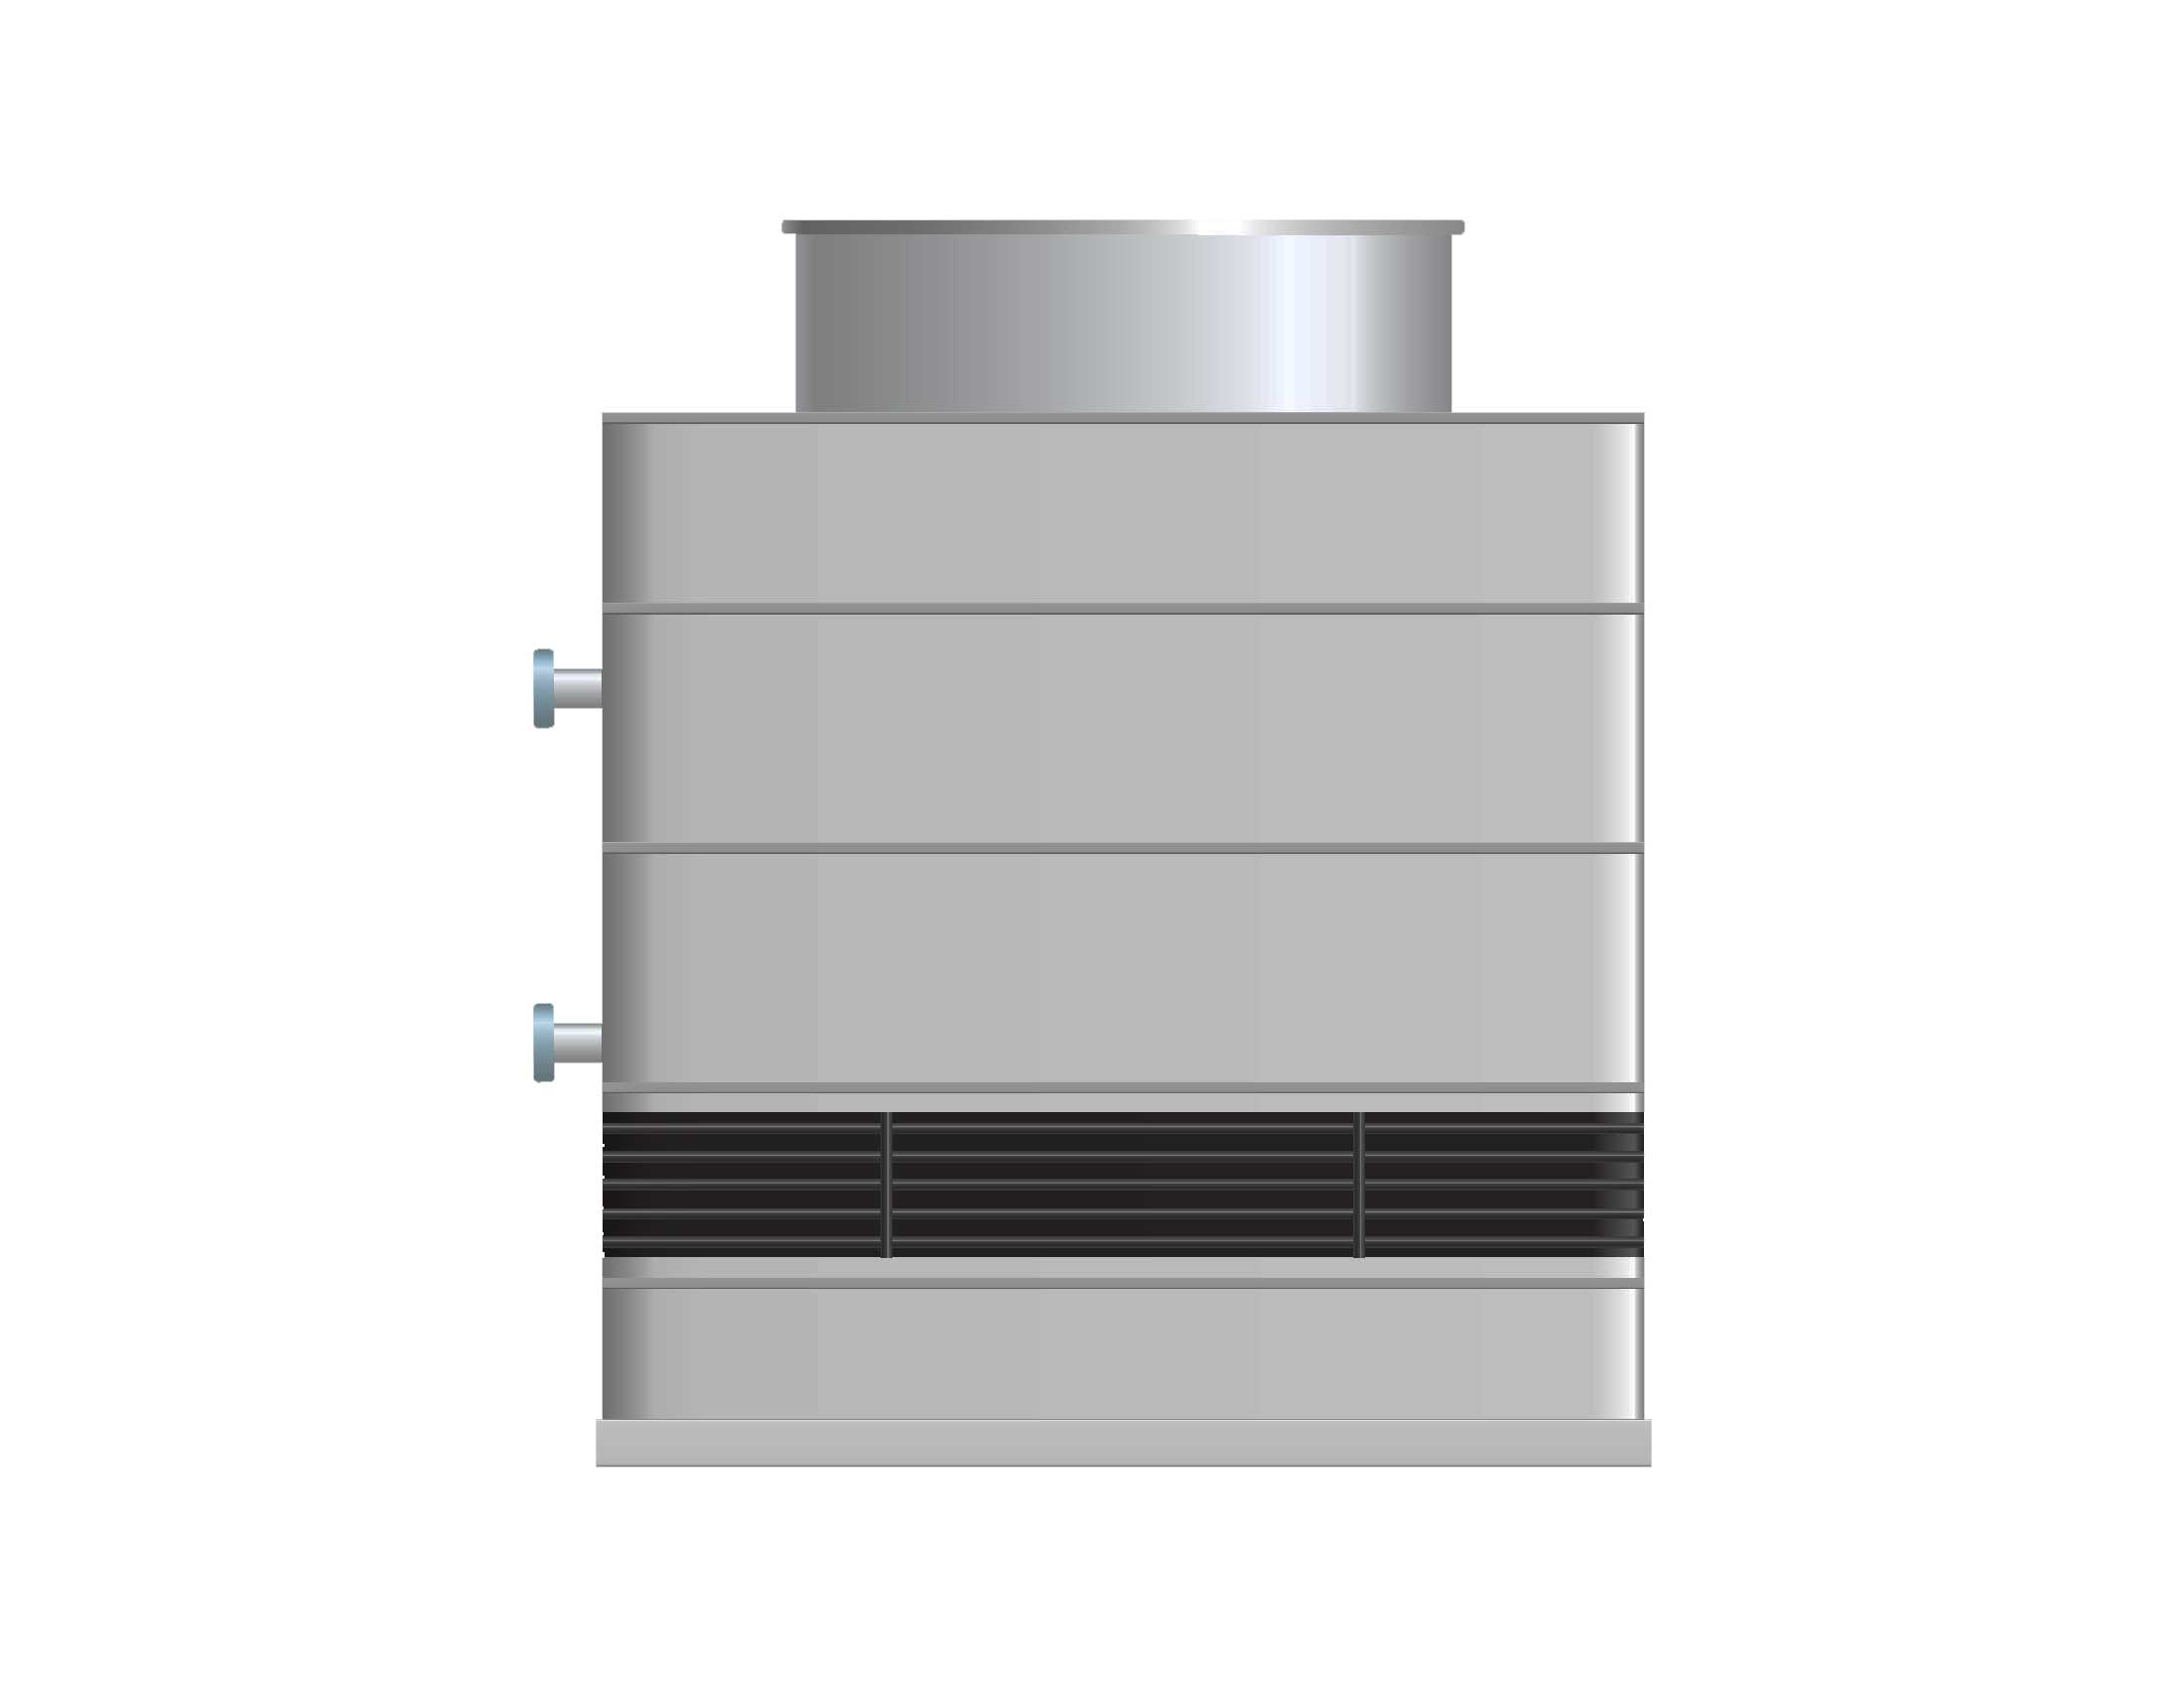 COOLING-TOWER-ICON-IWCI2